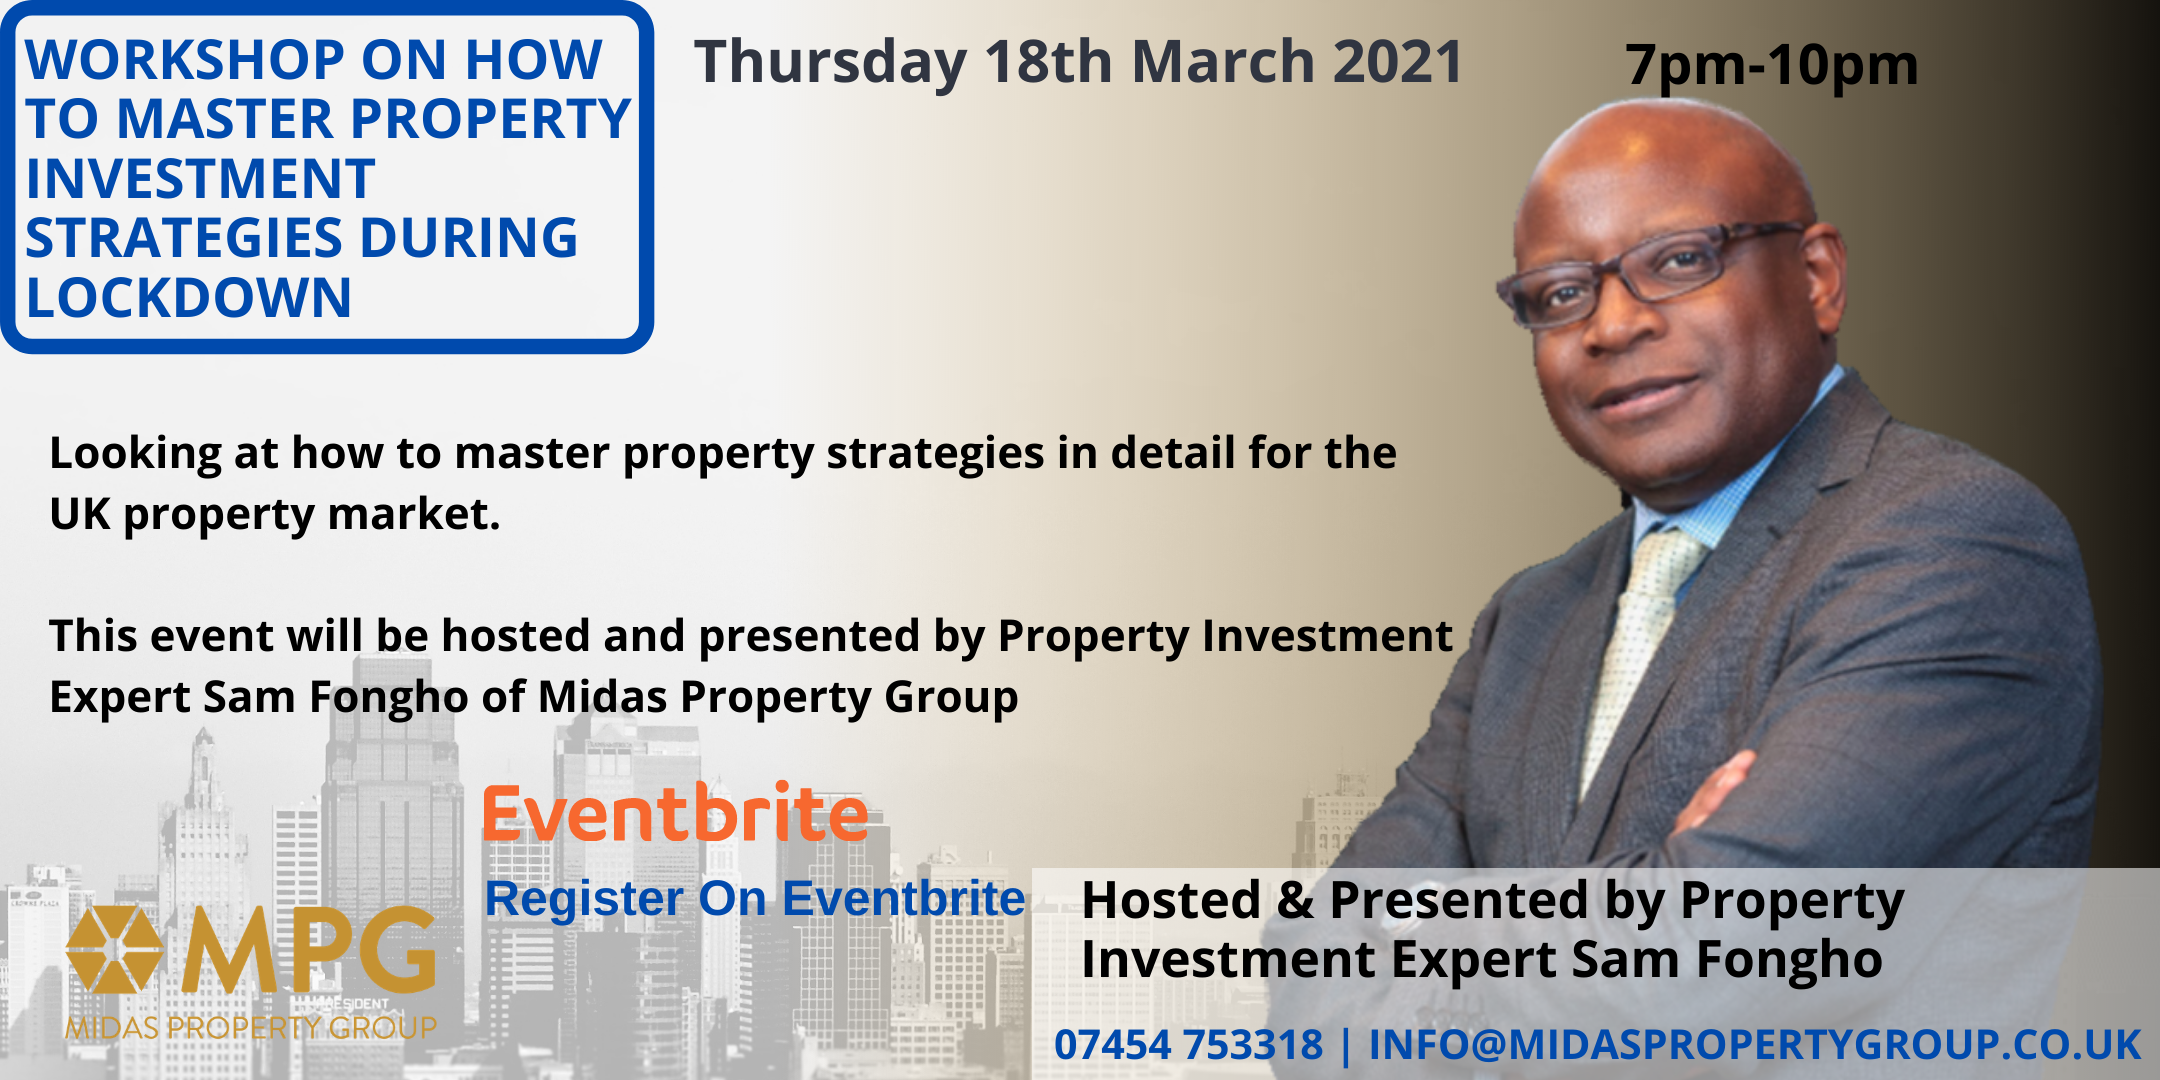 Workshop On How To Master Property Investment Strategies during Lockdown